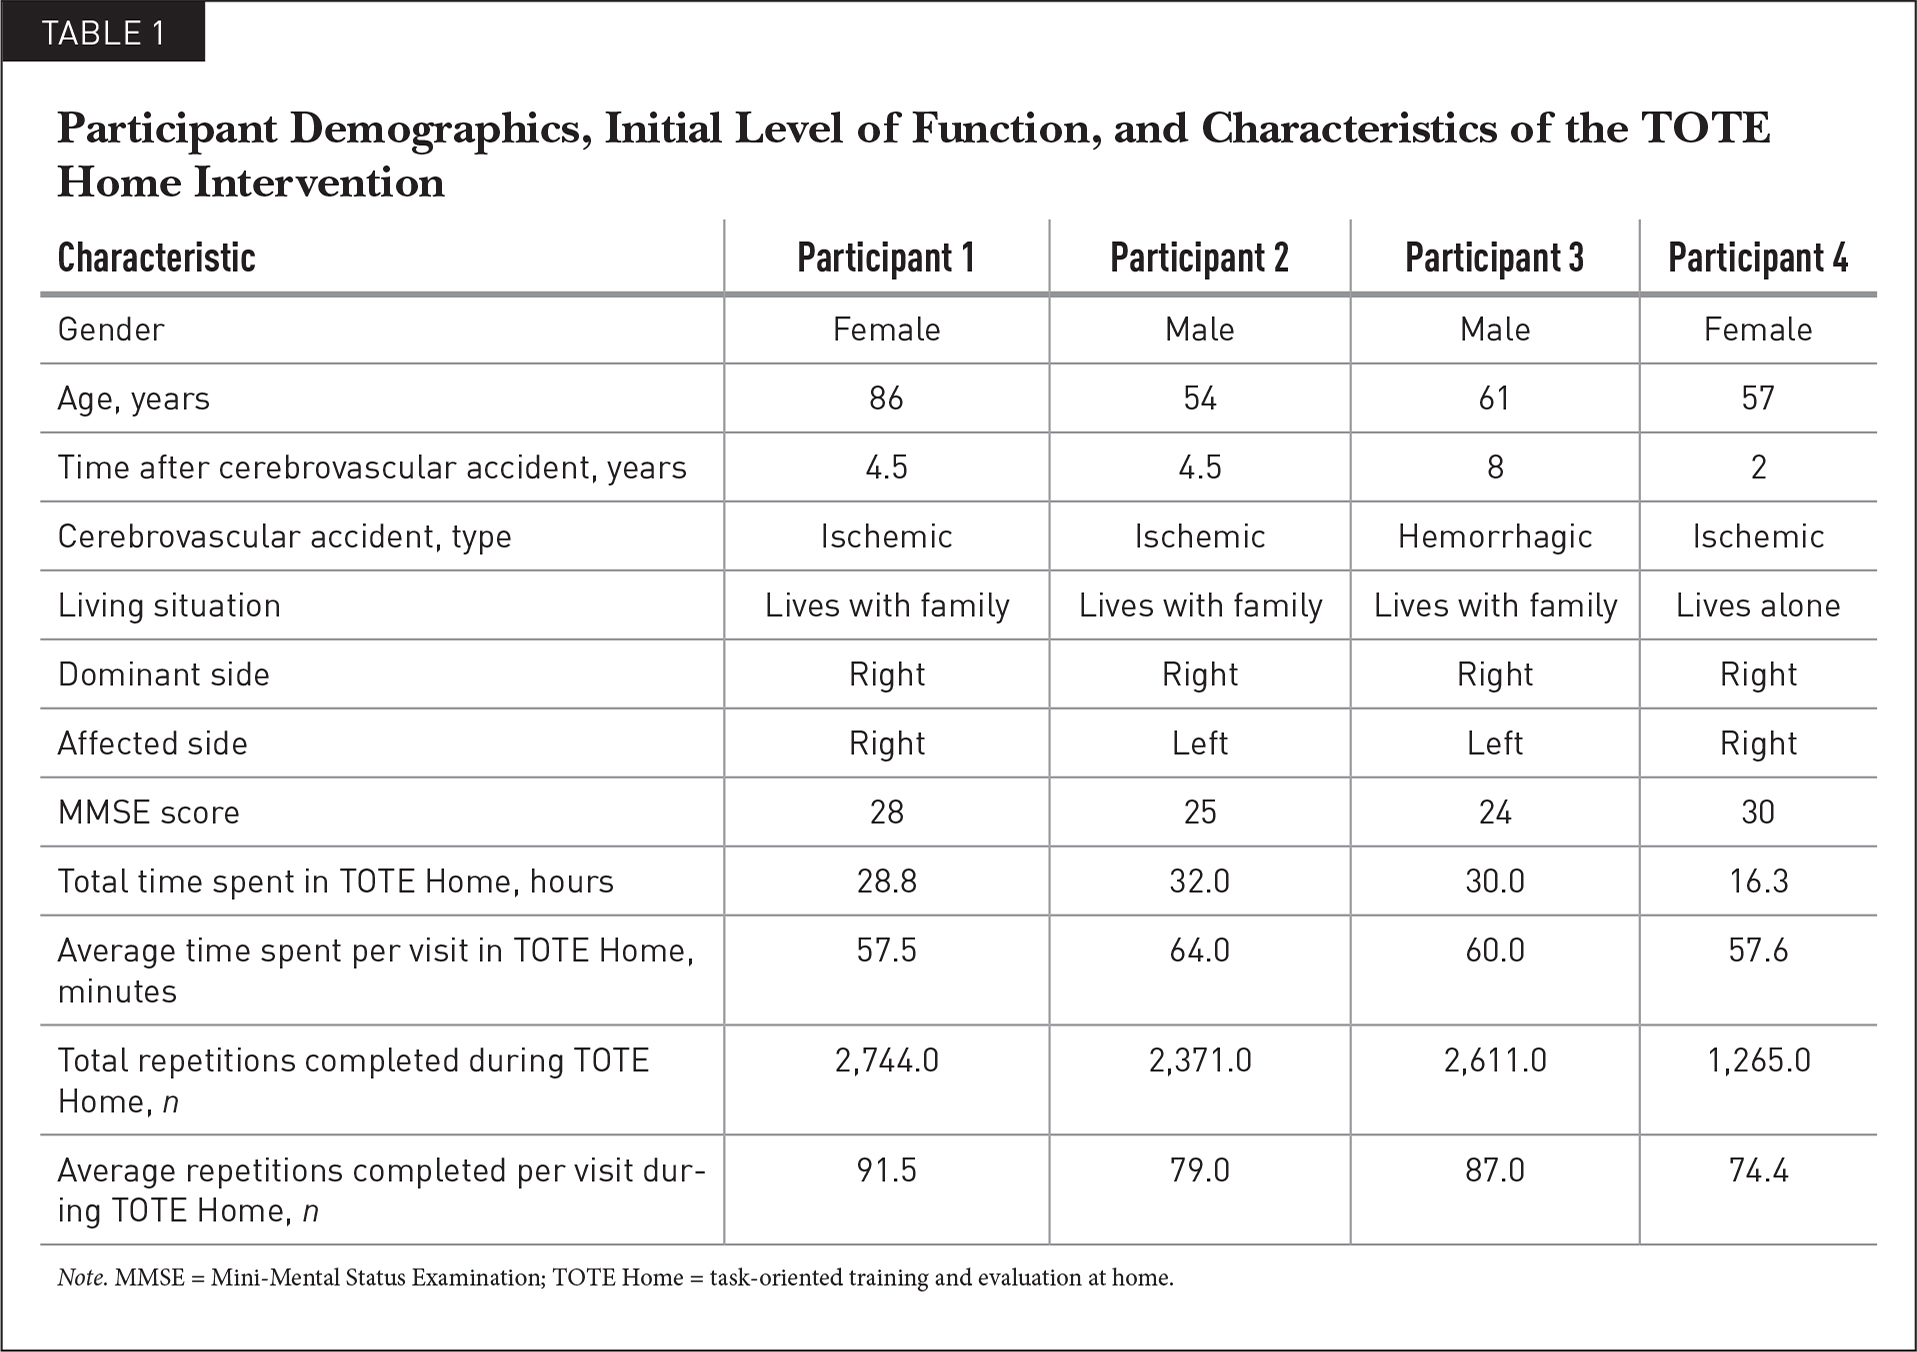 Participant Demographics, Initial Level of Function, and Characteristics of the TOTE Home Intervention